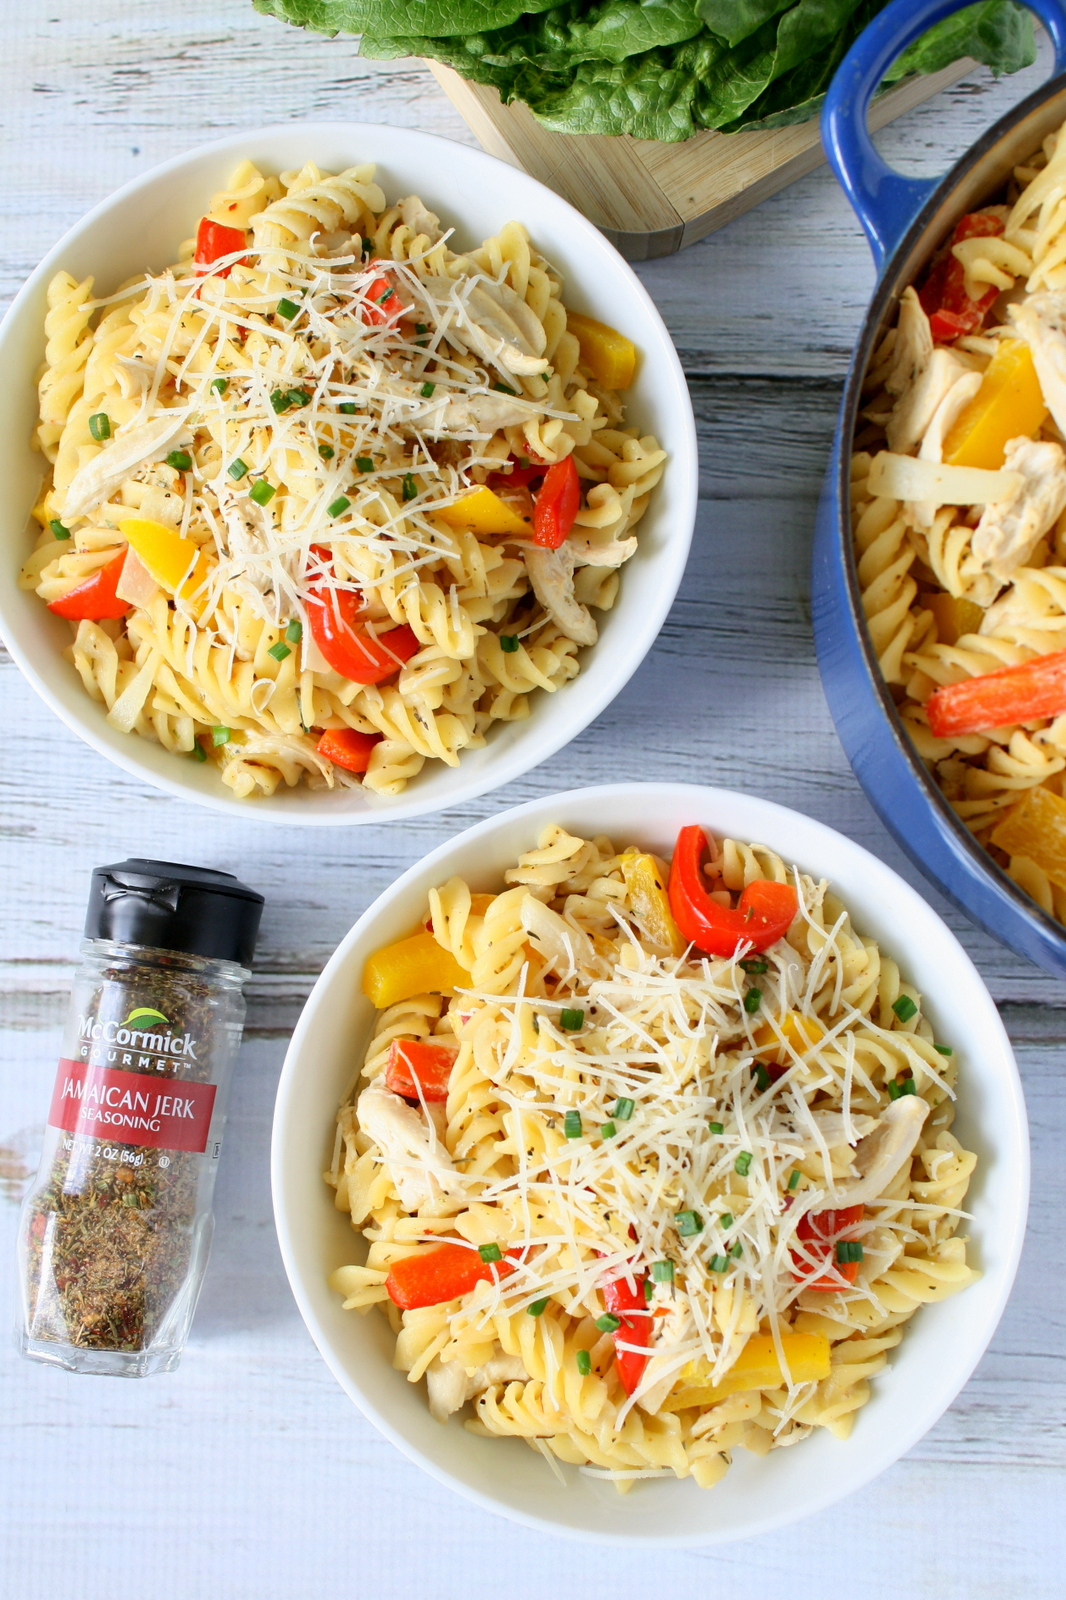 Jamaican jerk chicken pasta